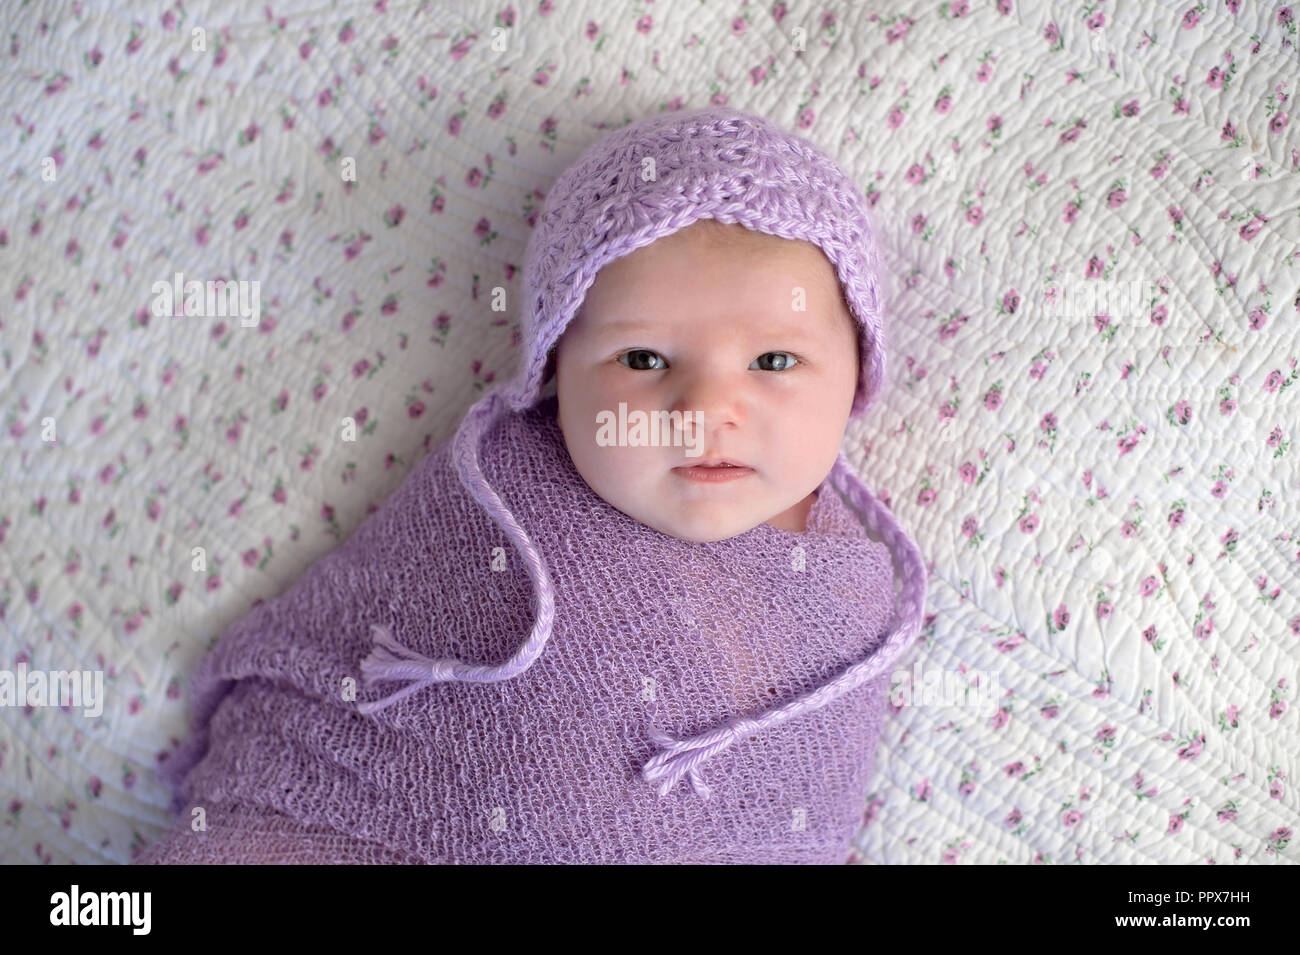 One month old baby girl wearing a bonnet and swaddled in a lavender purple  wrap. d0b40fd0e3a